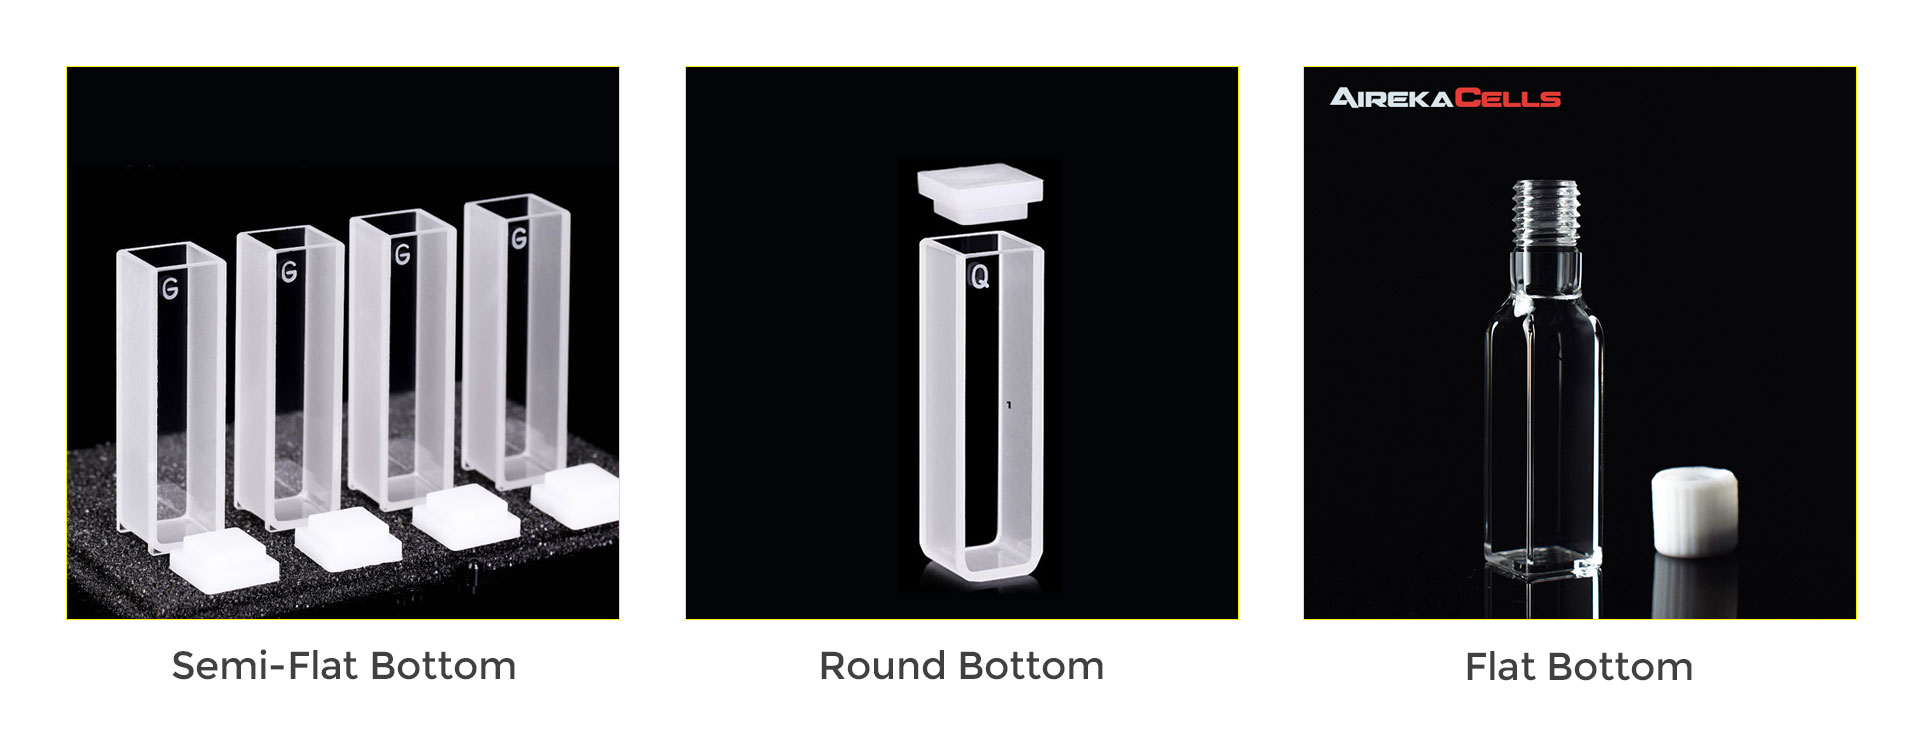 Different Types of Cuvette Bottoms